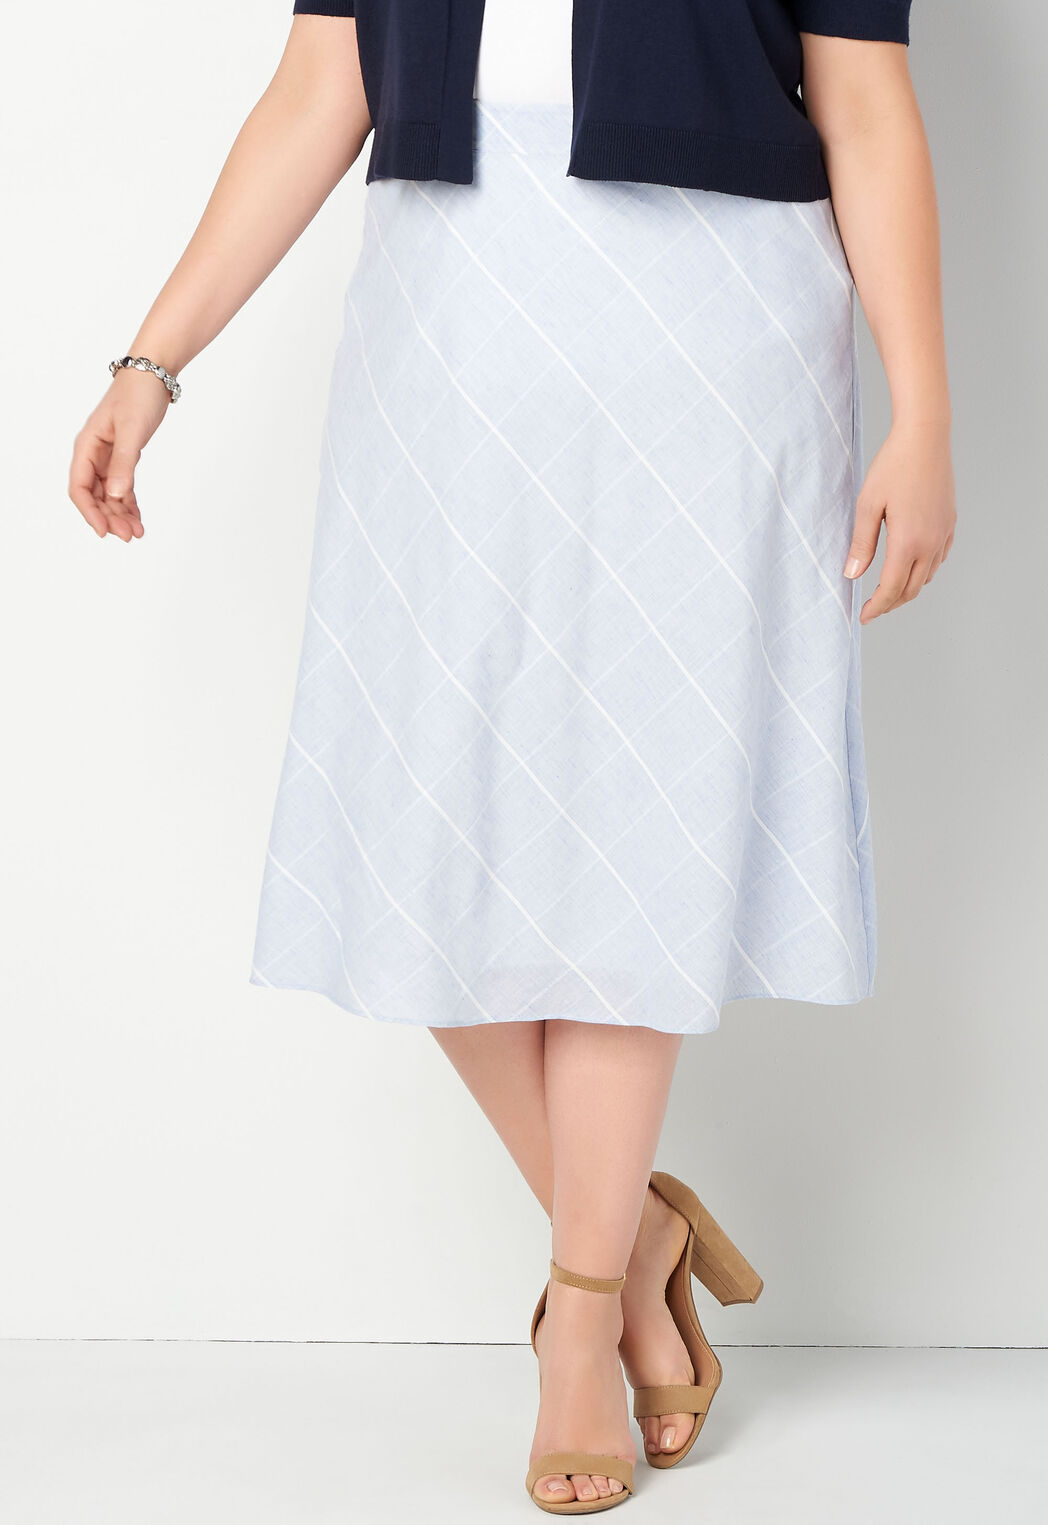 40774da8a ... Plaid Patterned Plus Size Skirt. Previous. add to wish list · add to  wish list